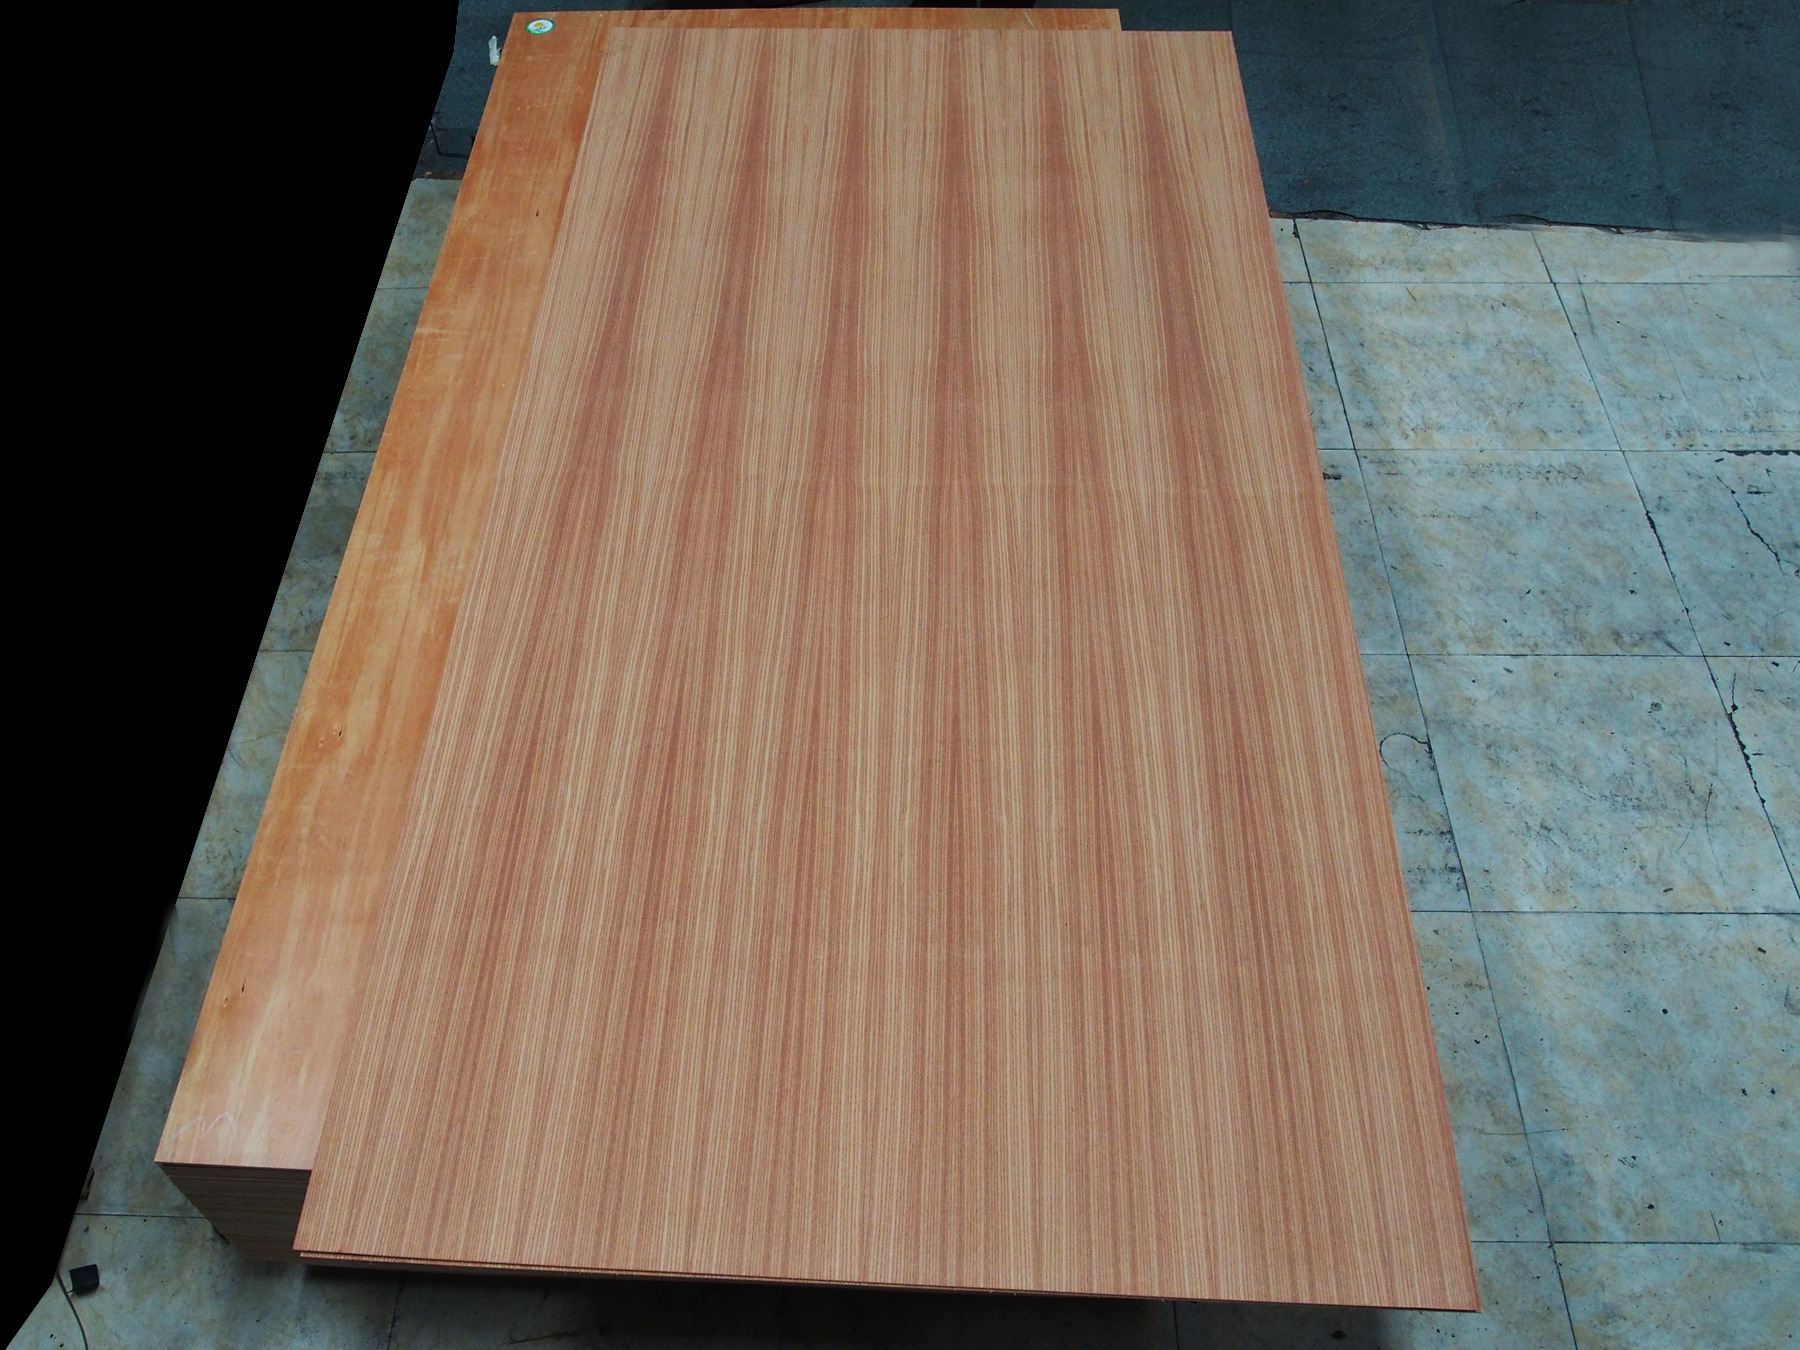 Natural wood veneer commercial plywood